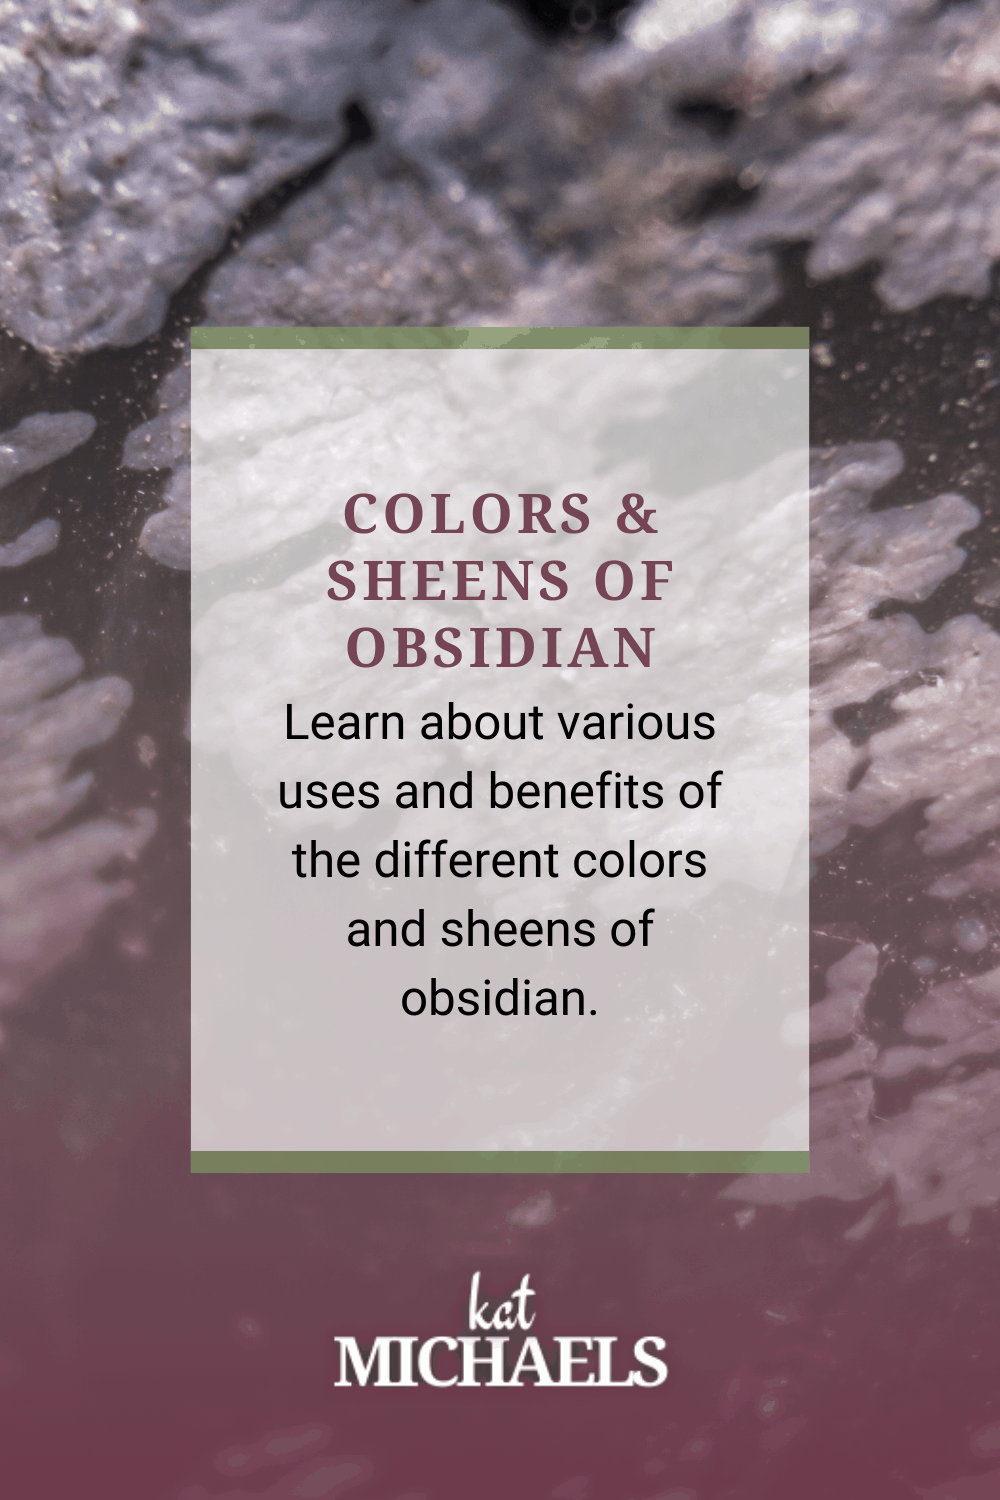 colors and sheens of obsidian